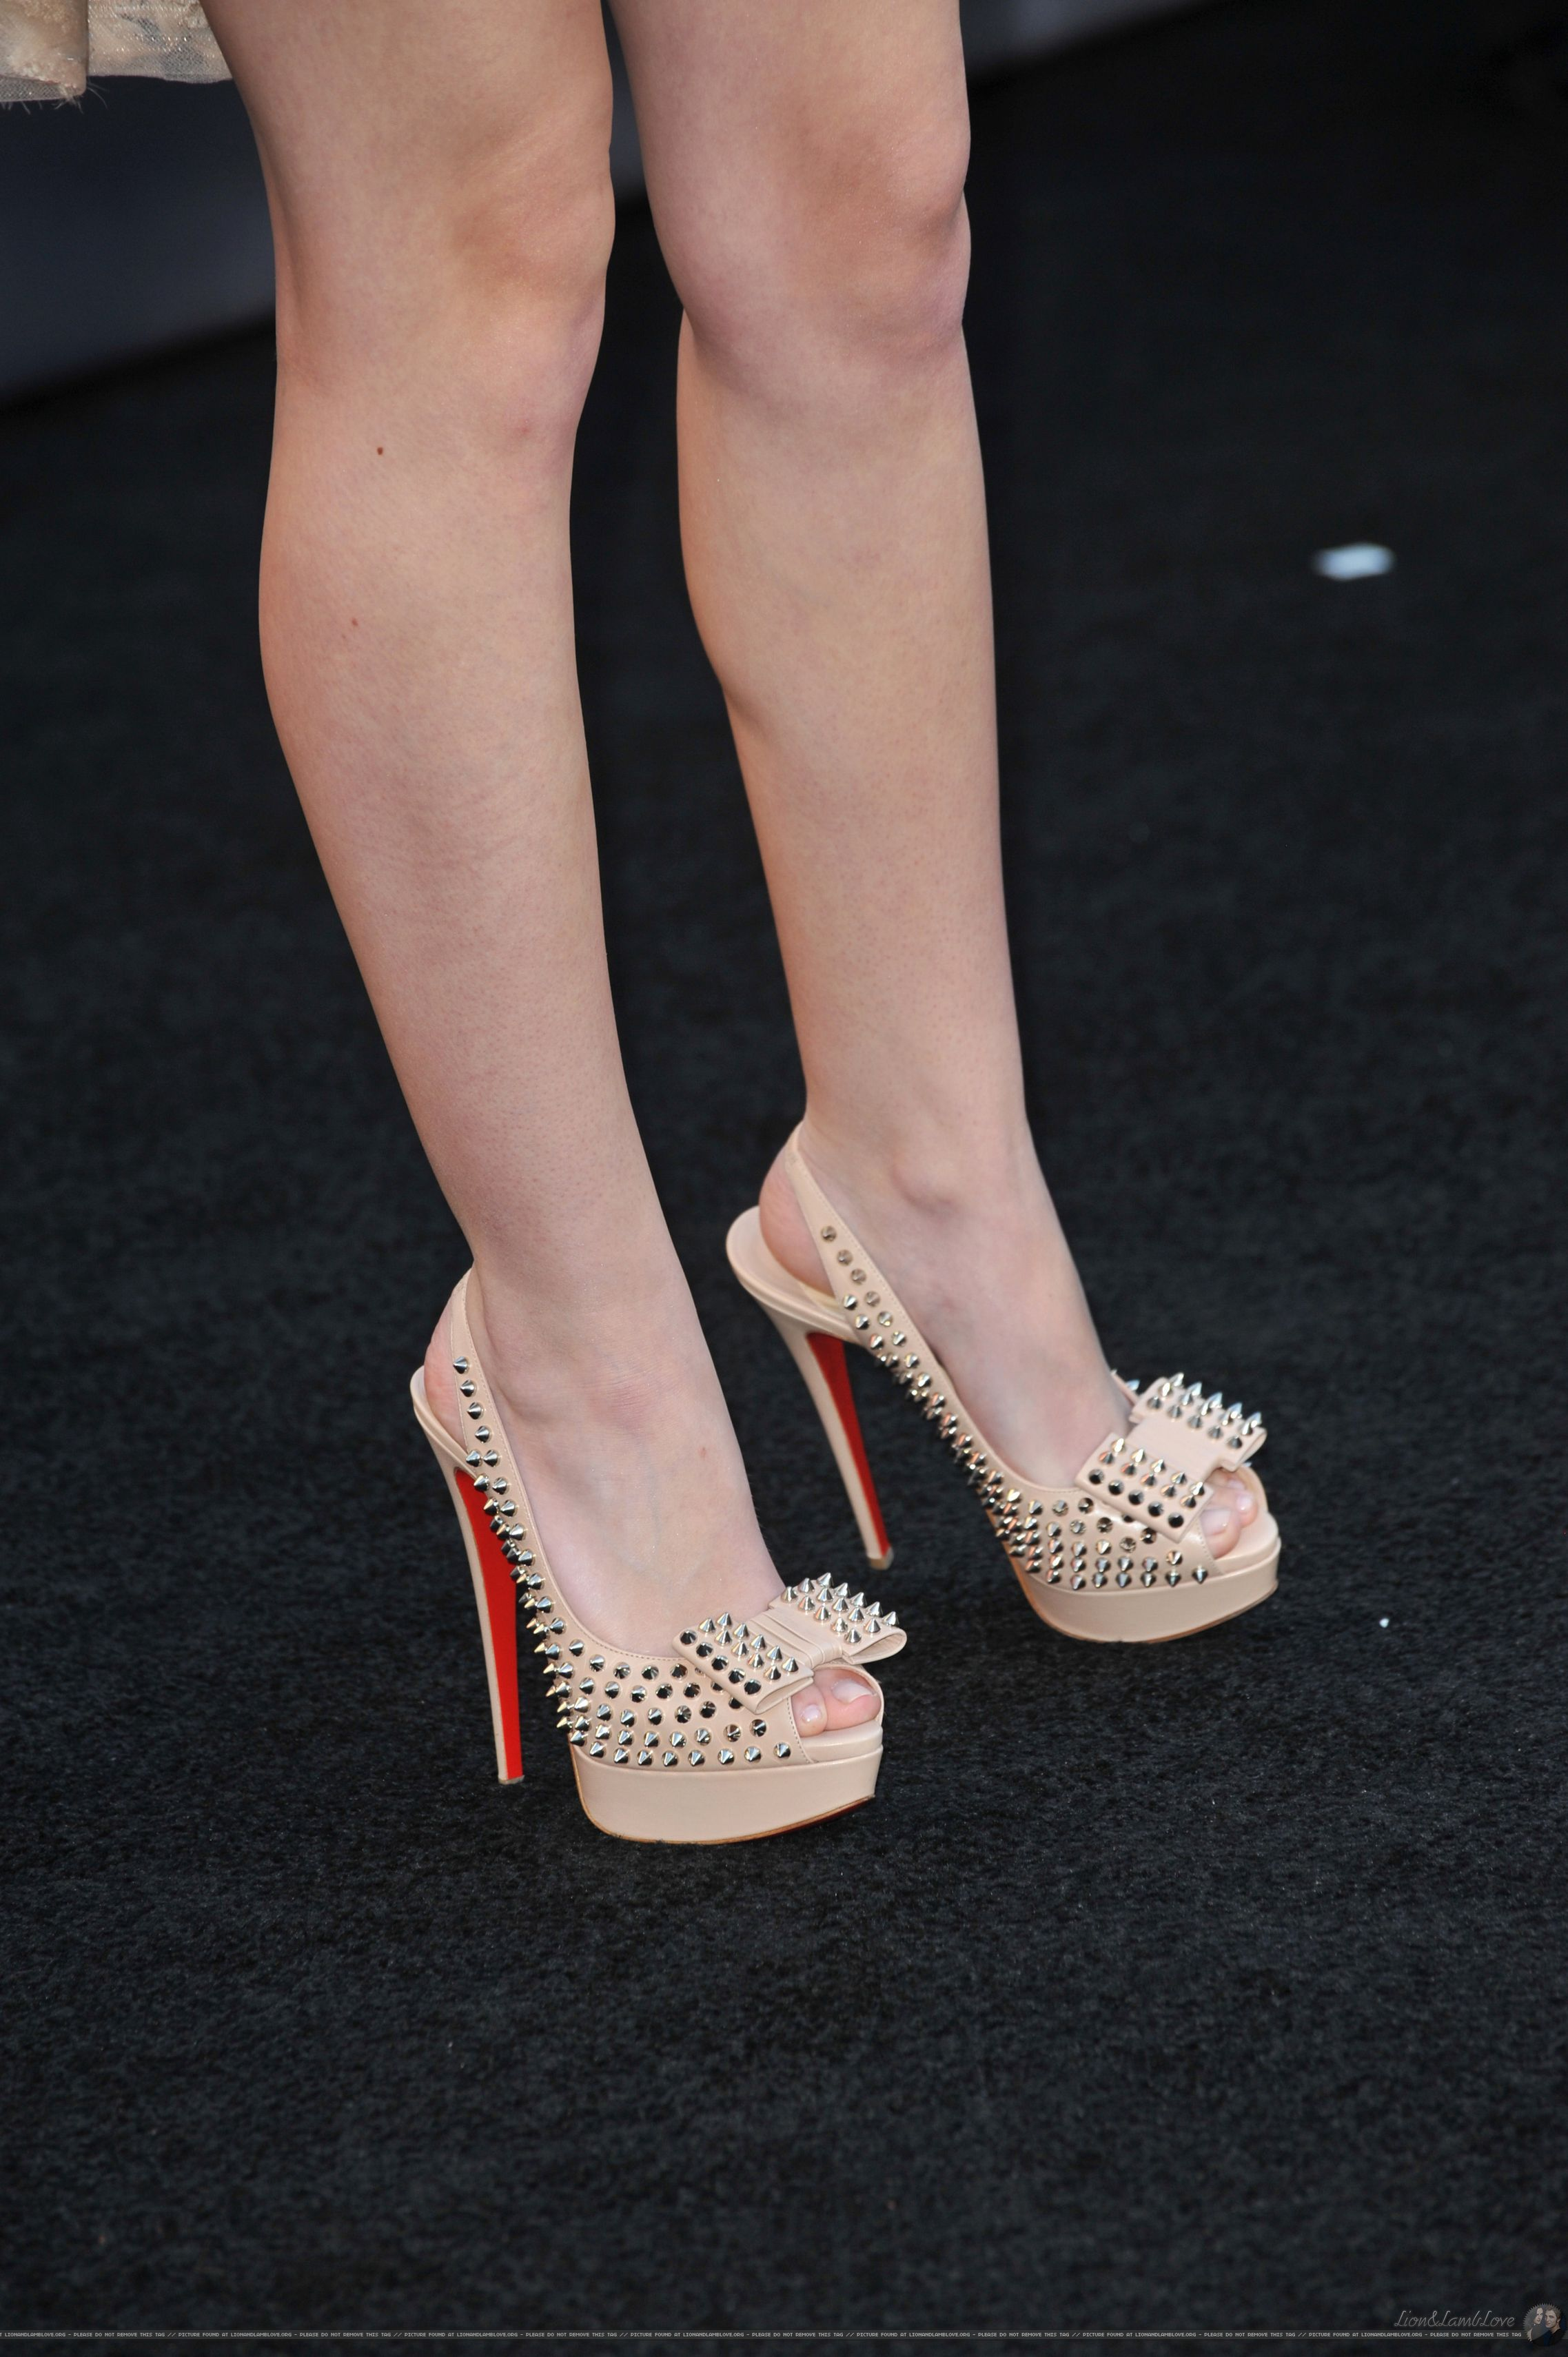 Favourite Eclipse Shoes Poll Results Dakota Fanning